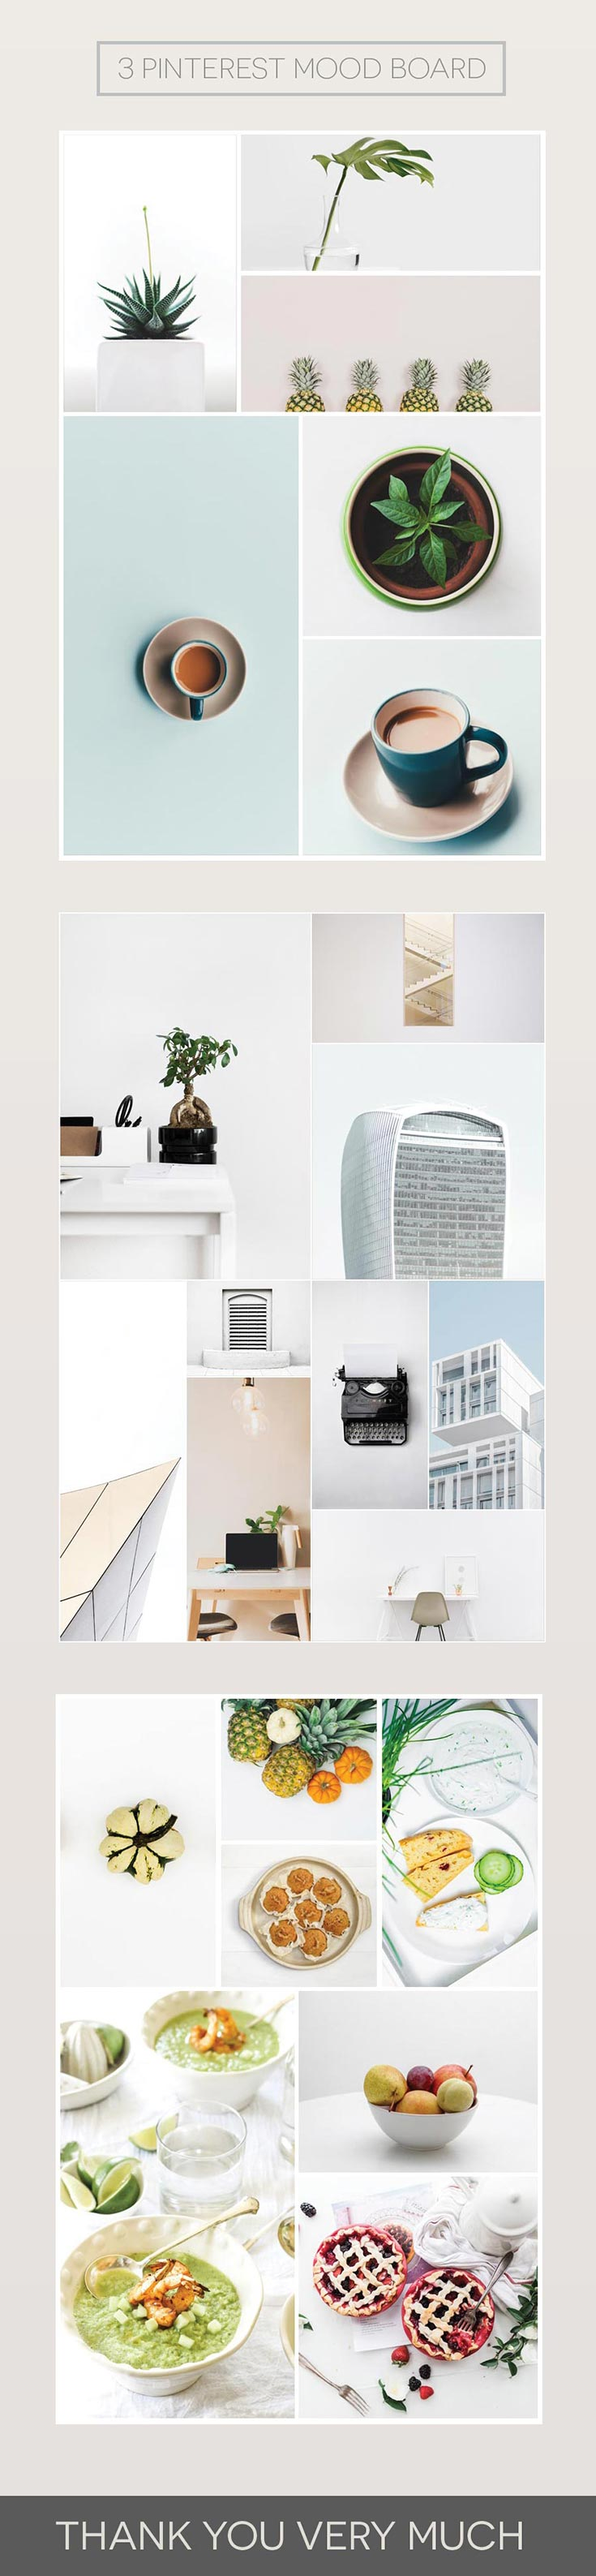 Free Pinterest Mood Board Is A Freebie Pack Containing 3 Templates